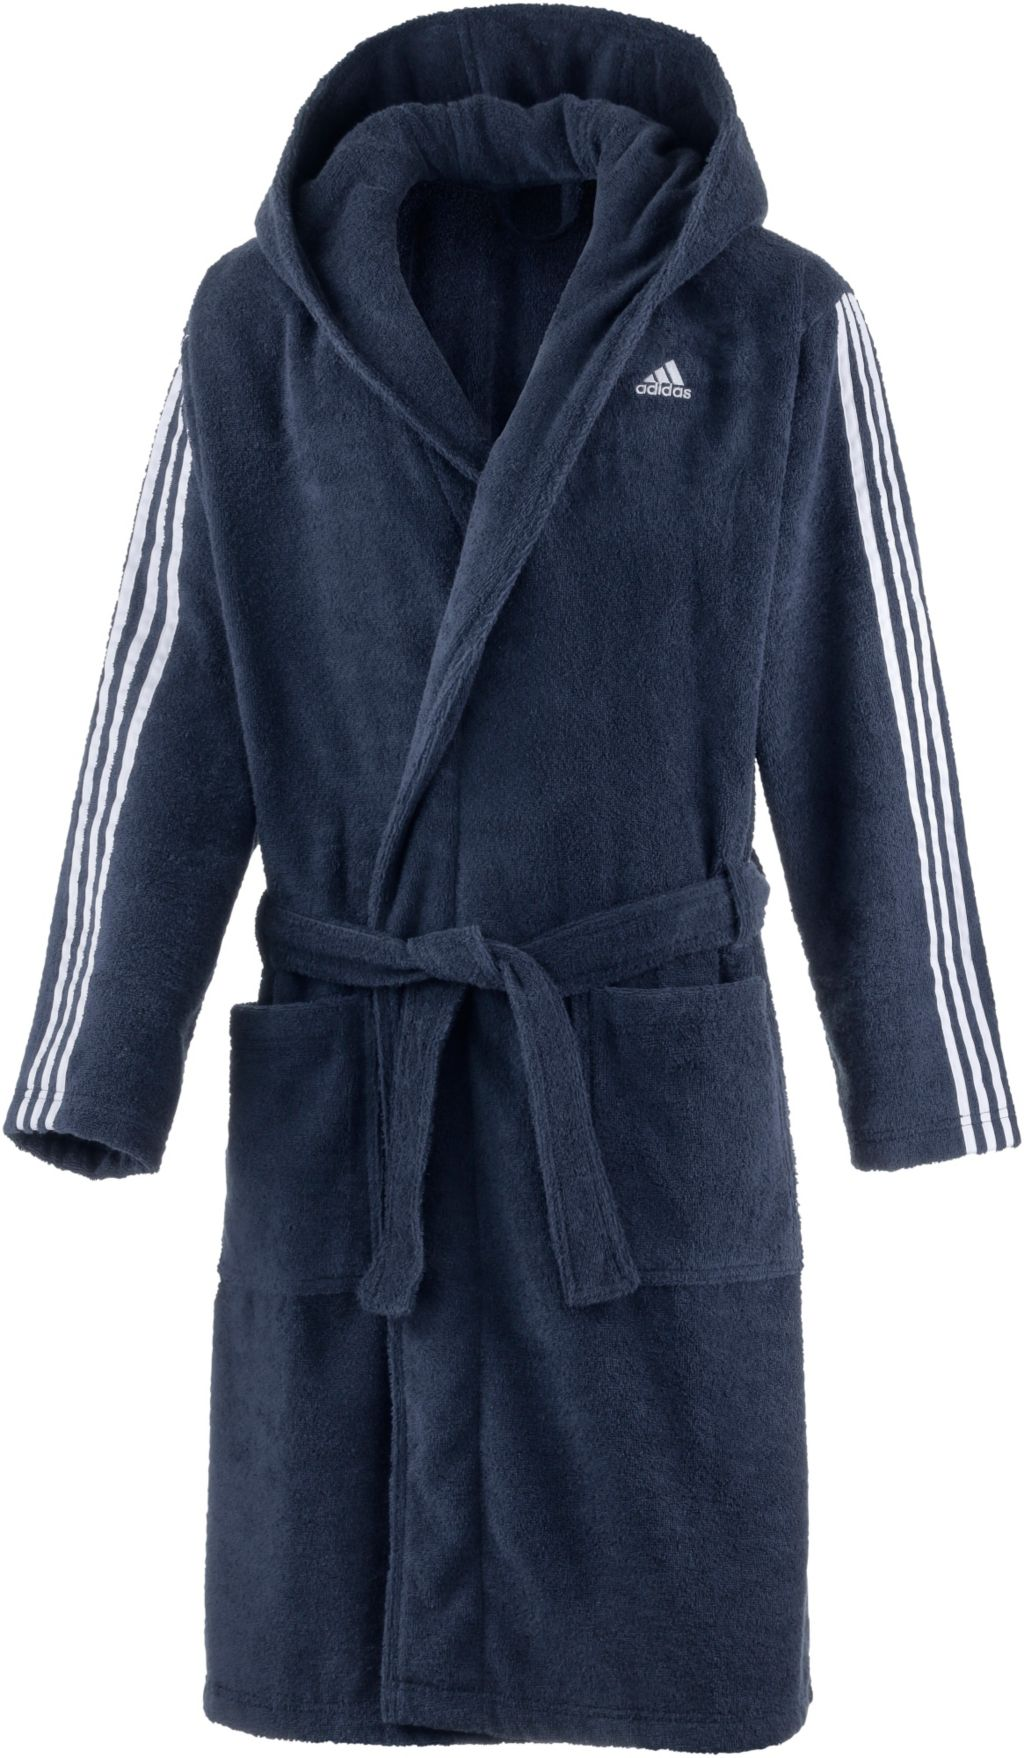 adidas bathrobe men preisvergleich bademantel g nstig kaufen bei. Black Bedroom Furniture Sets. Home Design Ideas